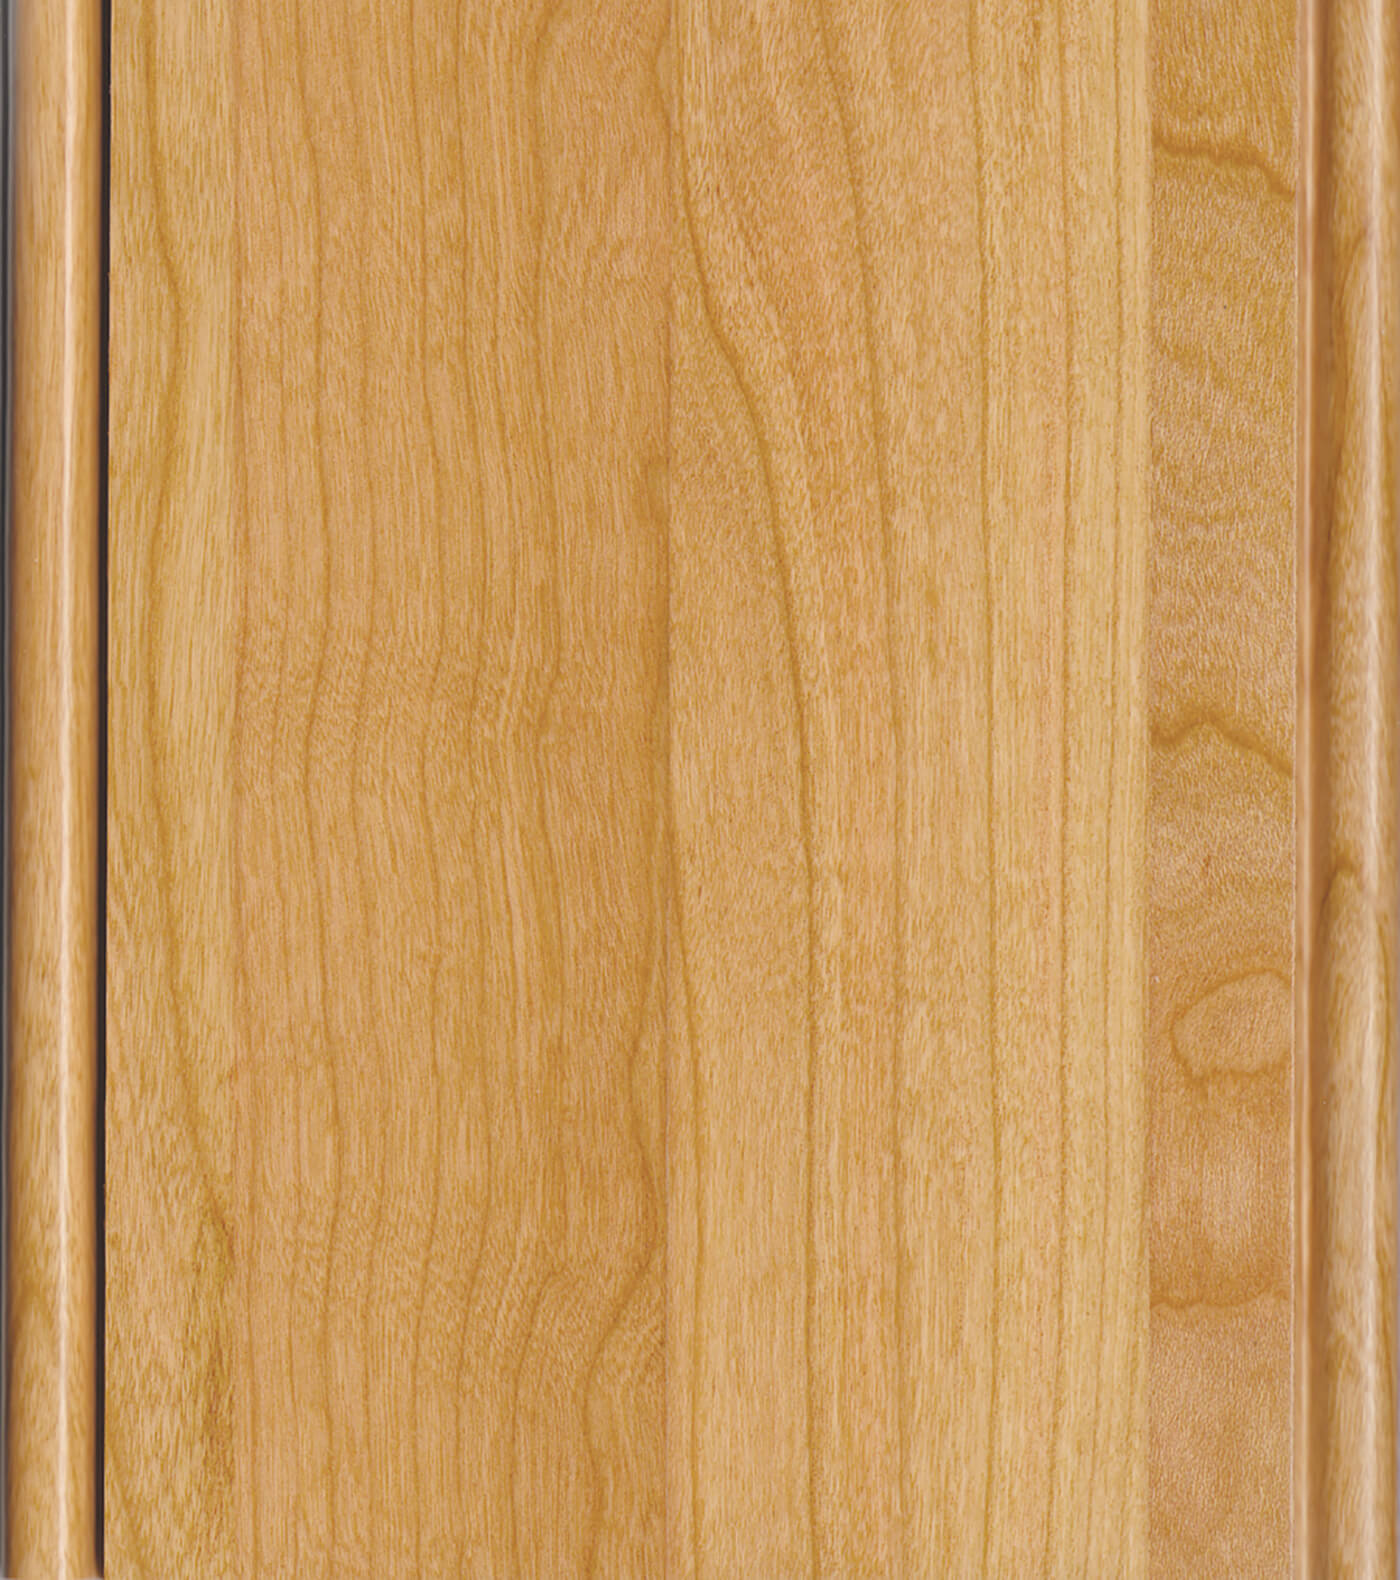 Natural Finish on Cherry